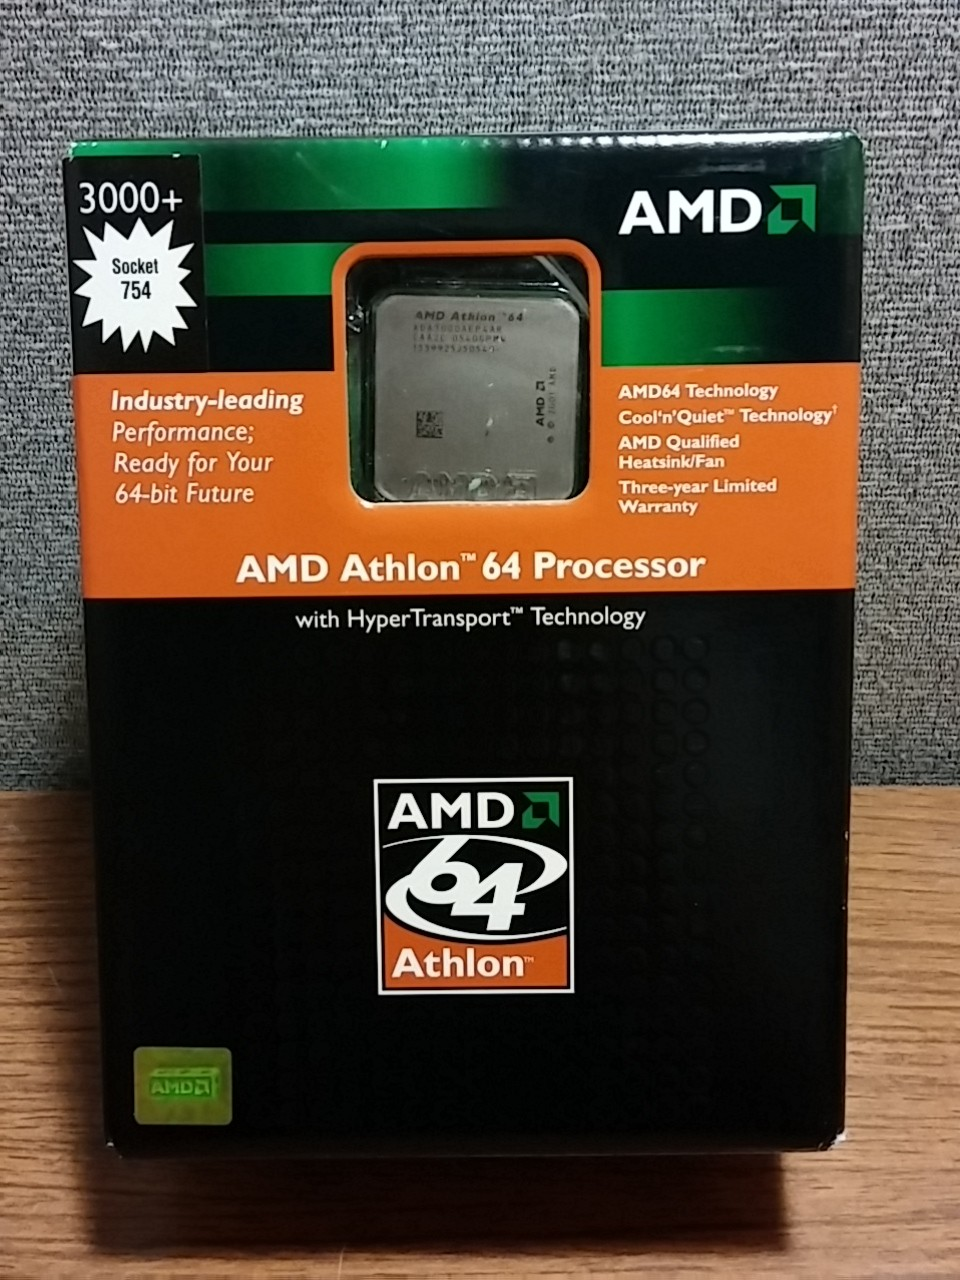 NEW Retail AMD Athlon 64 3000+ CPU & Fan Socket 754